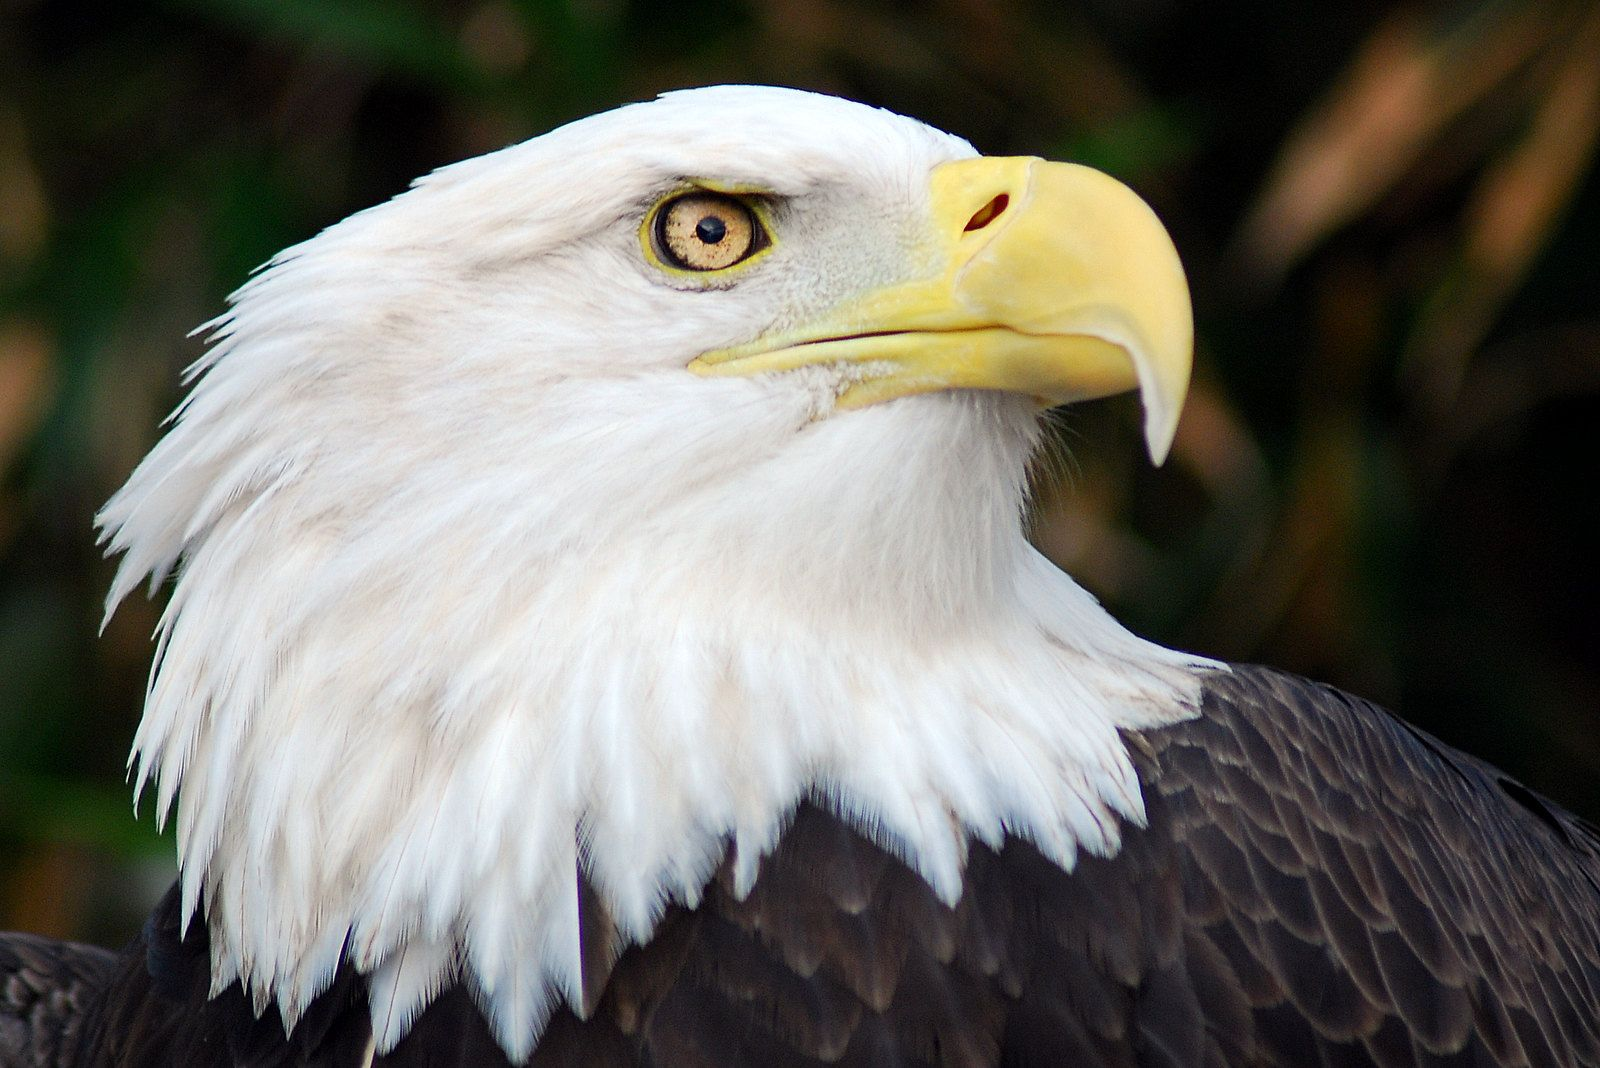 Endangered Species Day: In Celebration of the Endangered Species Act